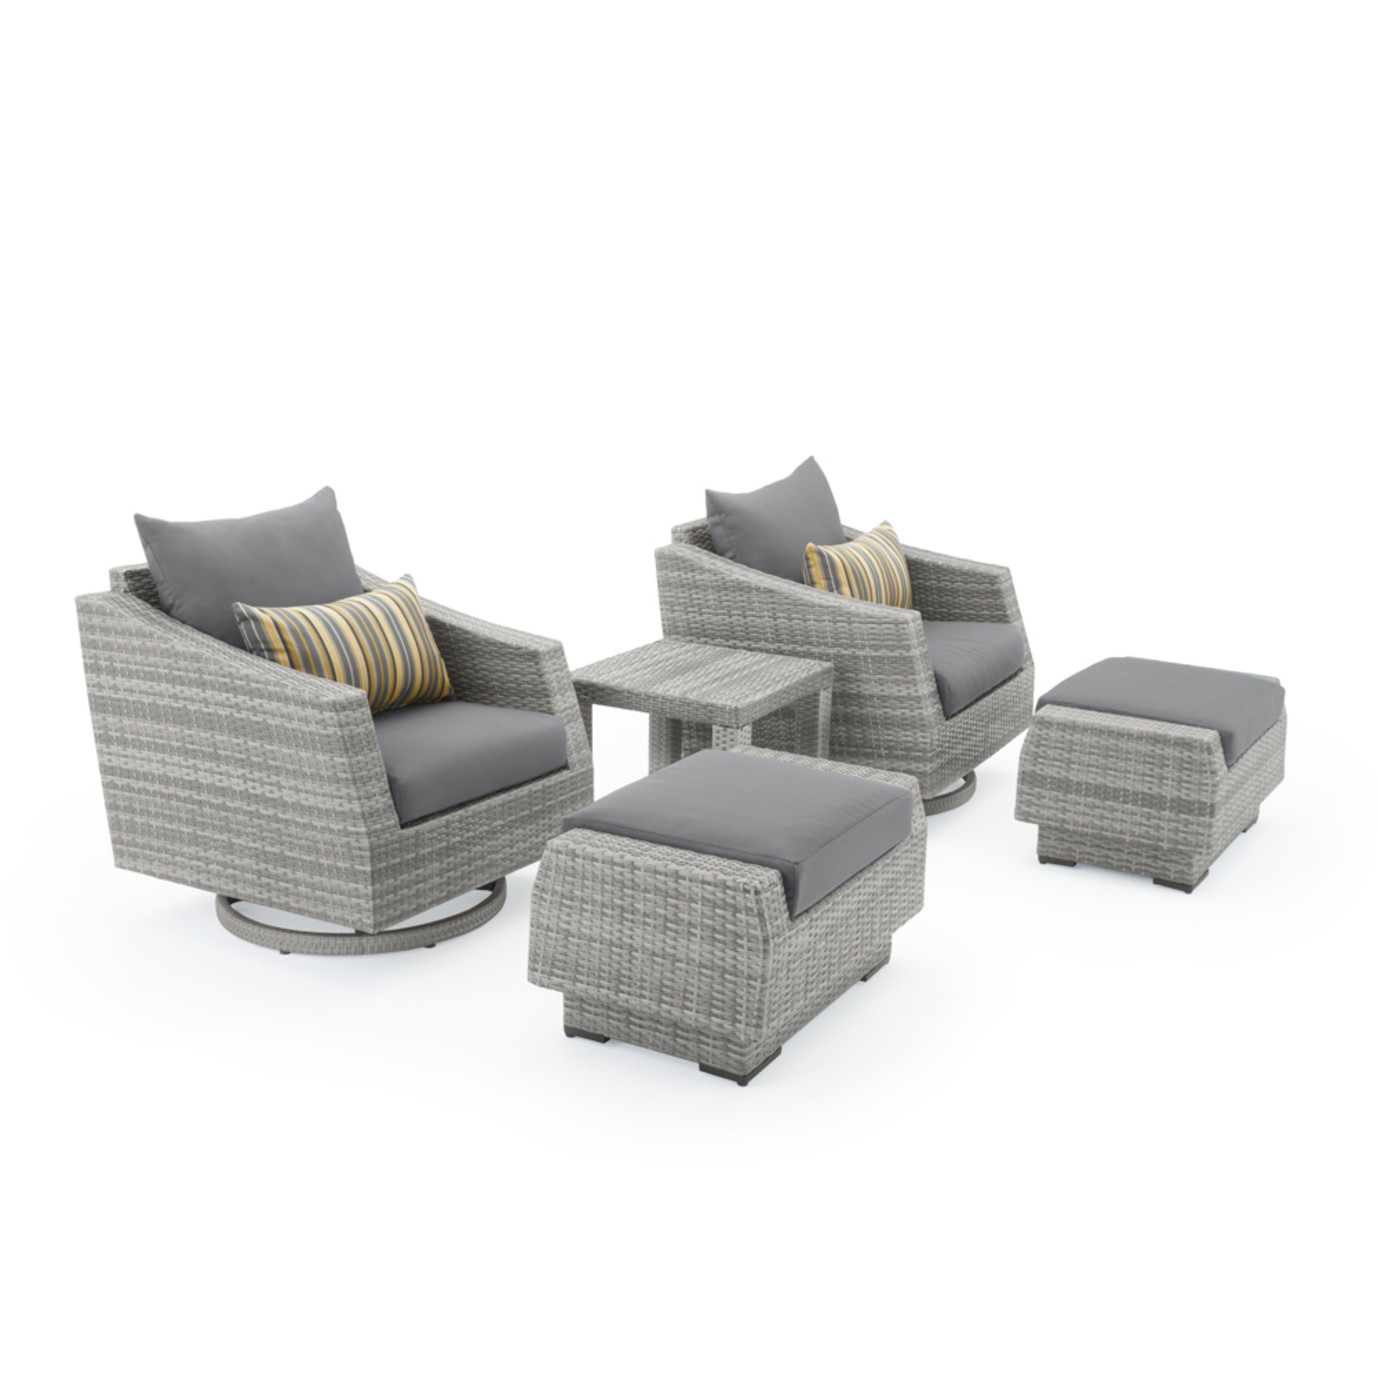 Cannes 5 Piece Motion Club Chair & Ottoman Set - Charcoal Gray